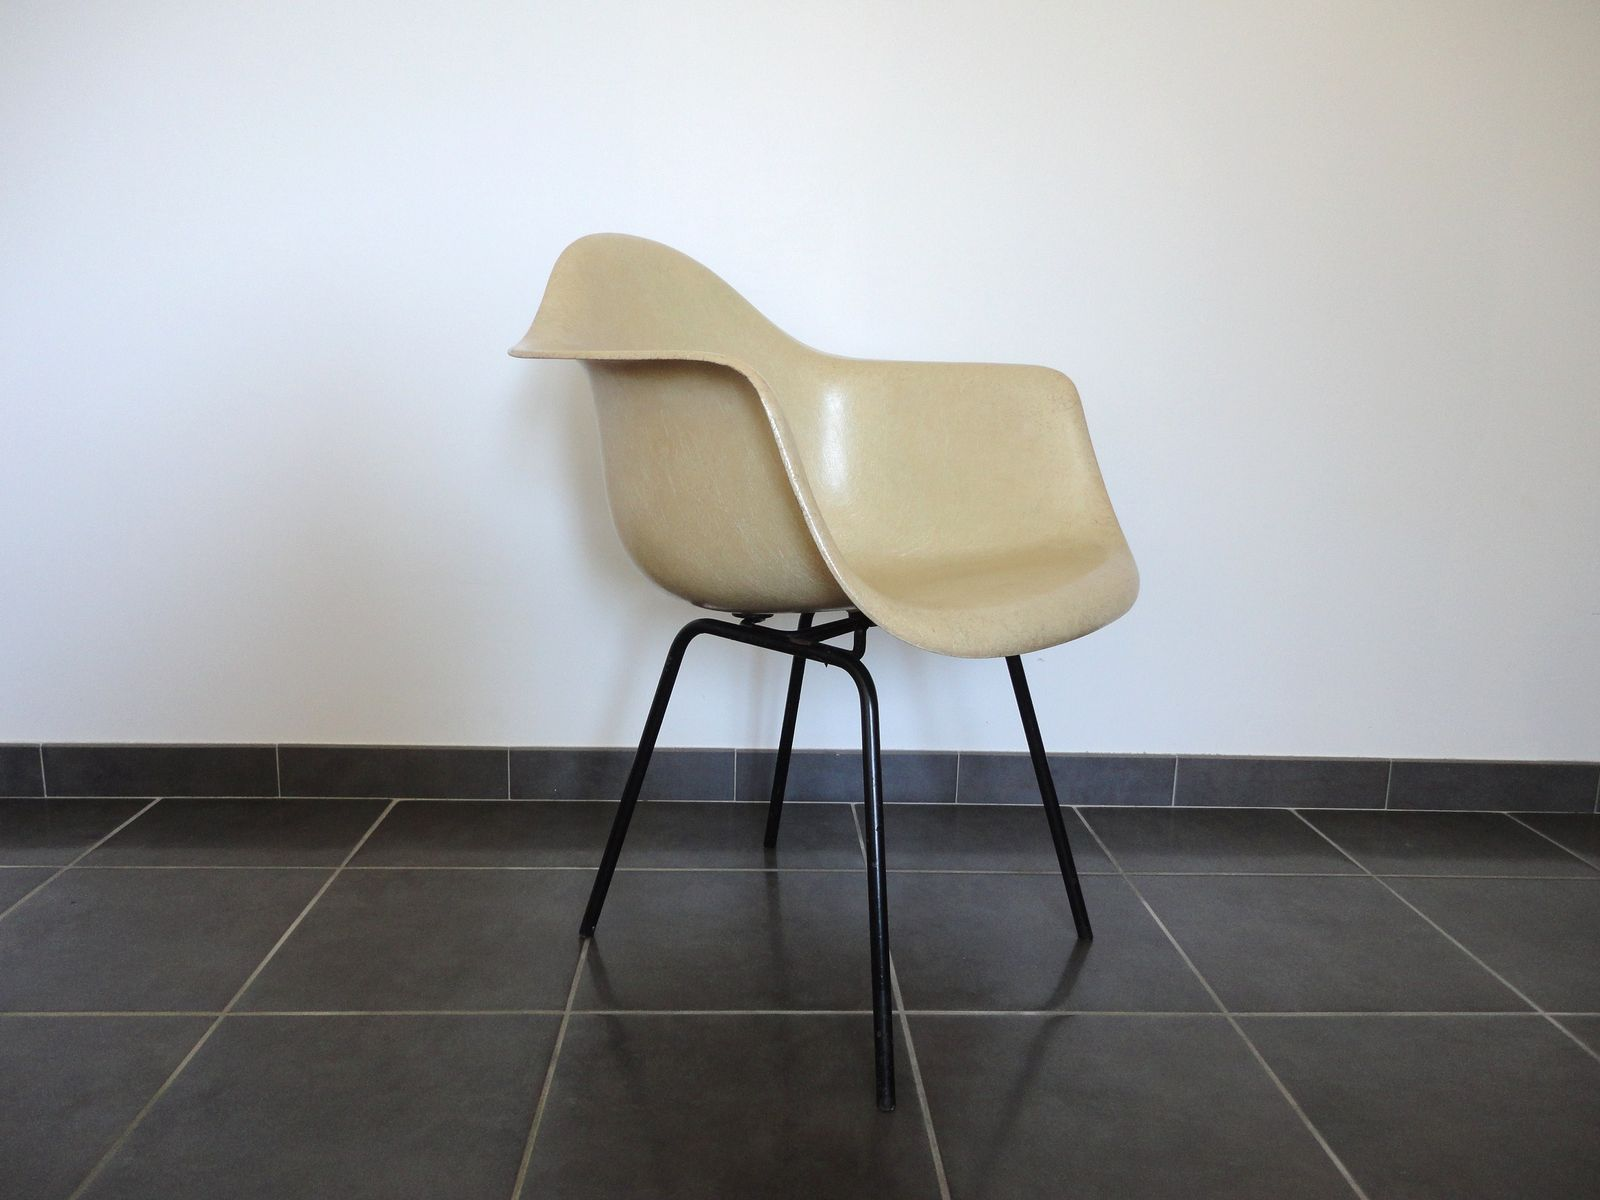 Fiberglass Armchair by Charles & Ray Eames for Herman Miller